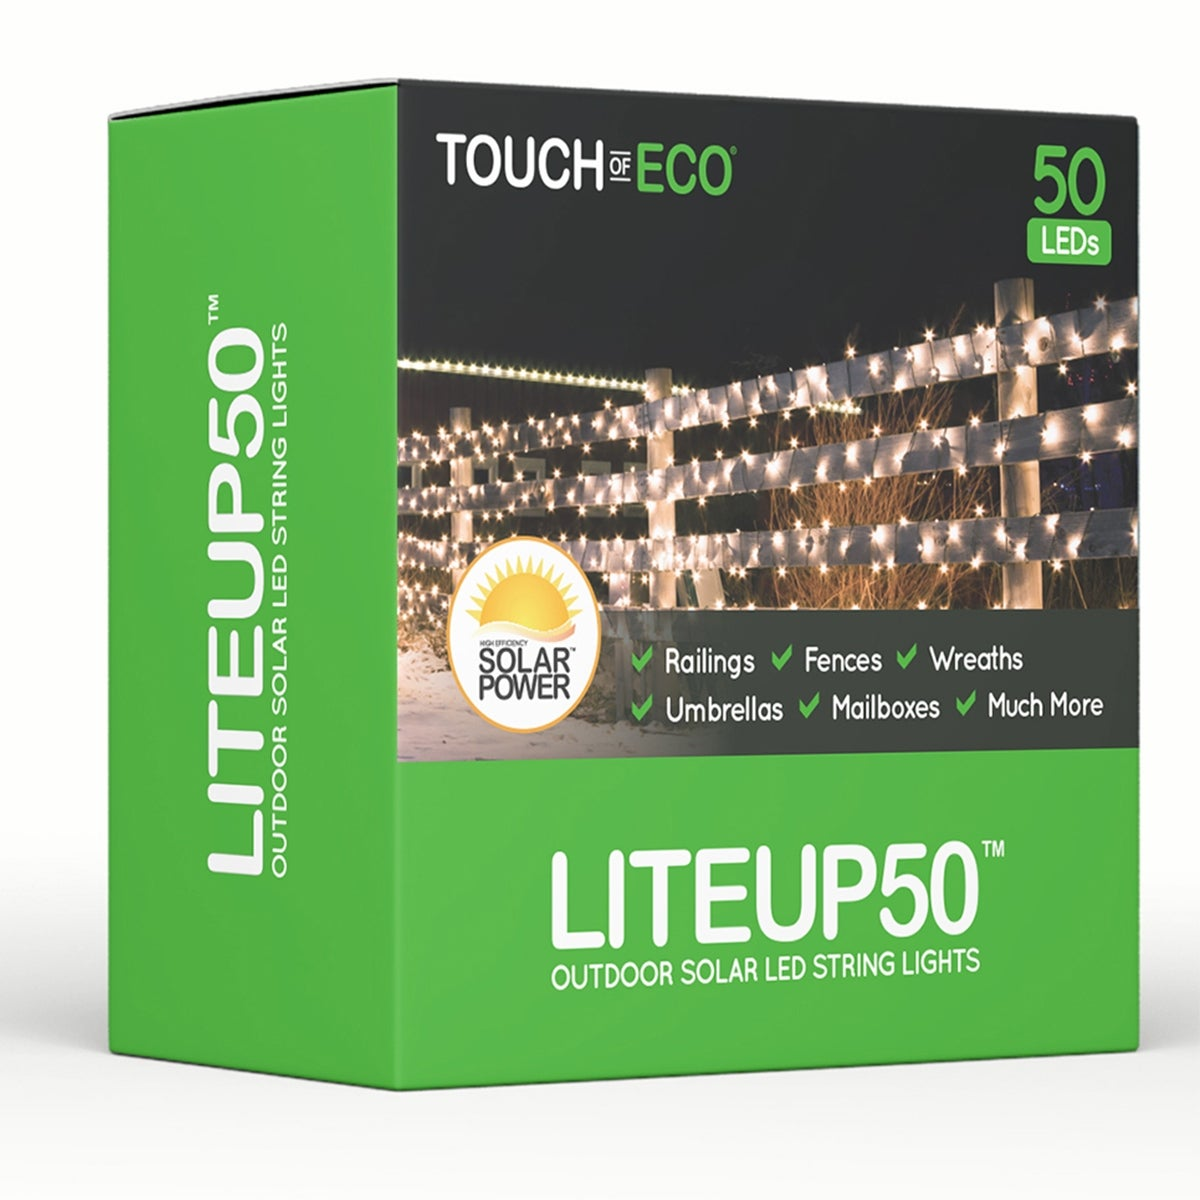 Liteup50 solar clip on string lights 50 count holiday or party liteup50 solar clip on string lights 50 count holiday or party lights mozeypictures Image collections